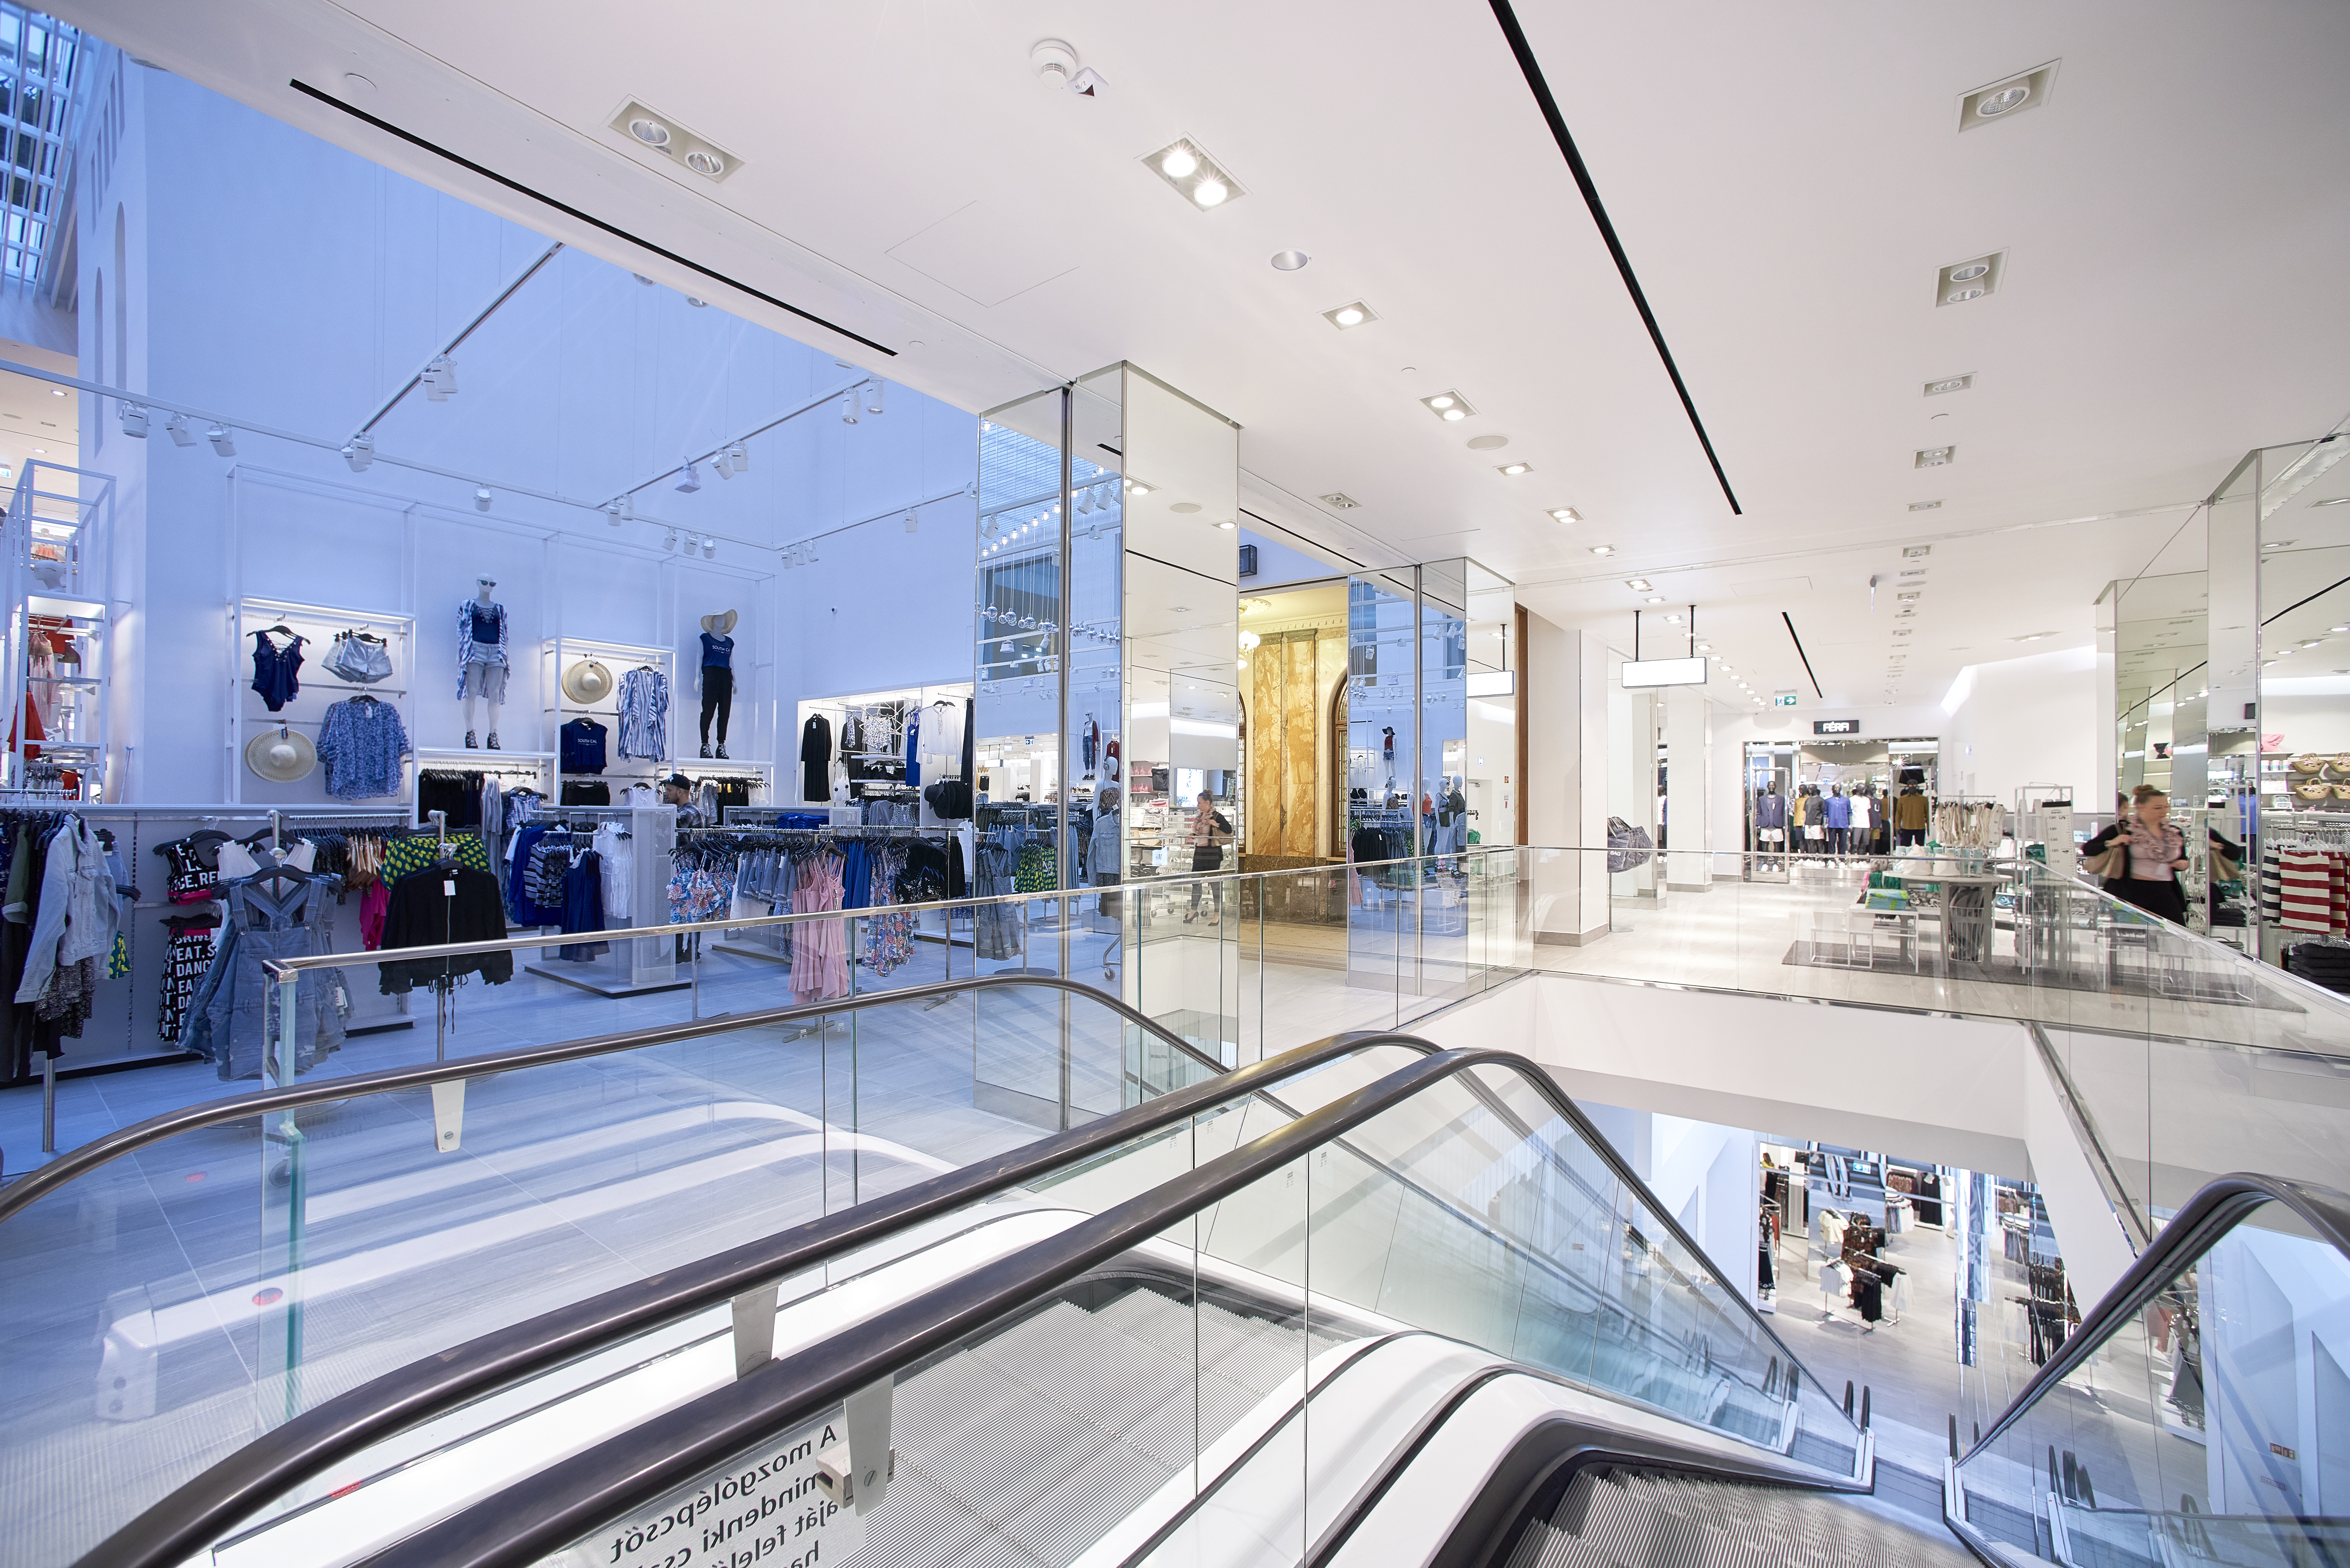 27._escalator_connecting_the_gf_and_1st_floor_of_hm_flagship_store_vaci1_budapest_hungary